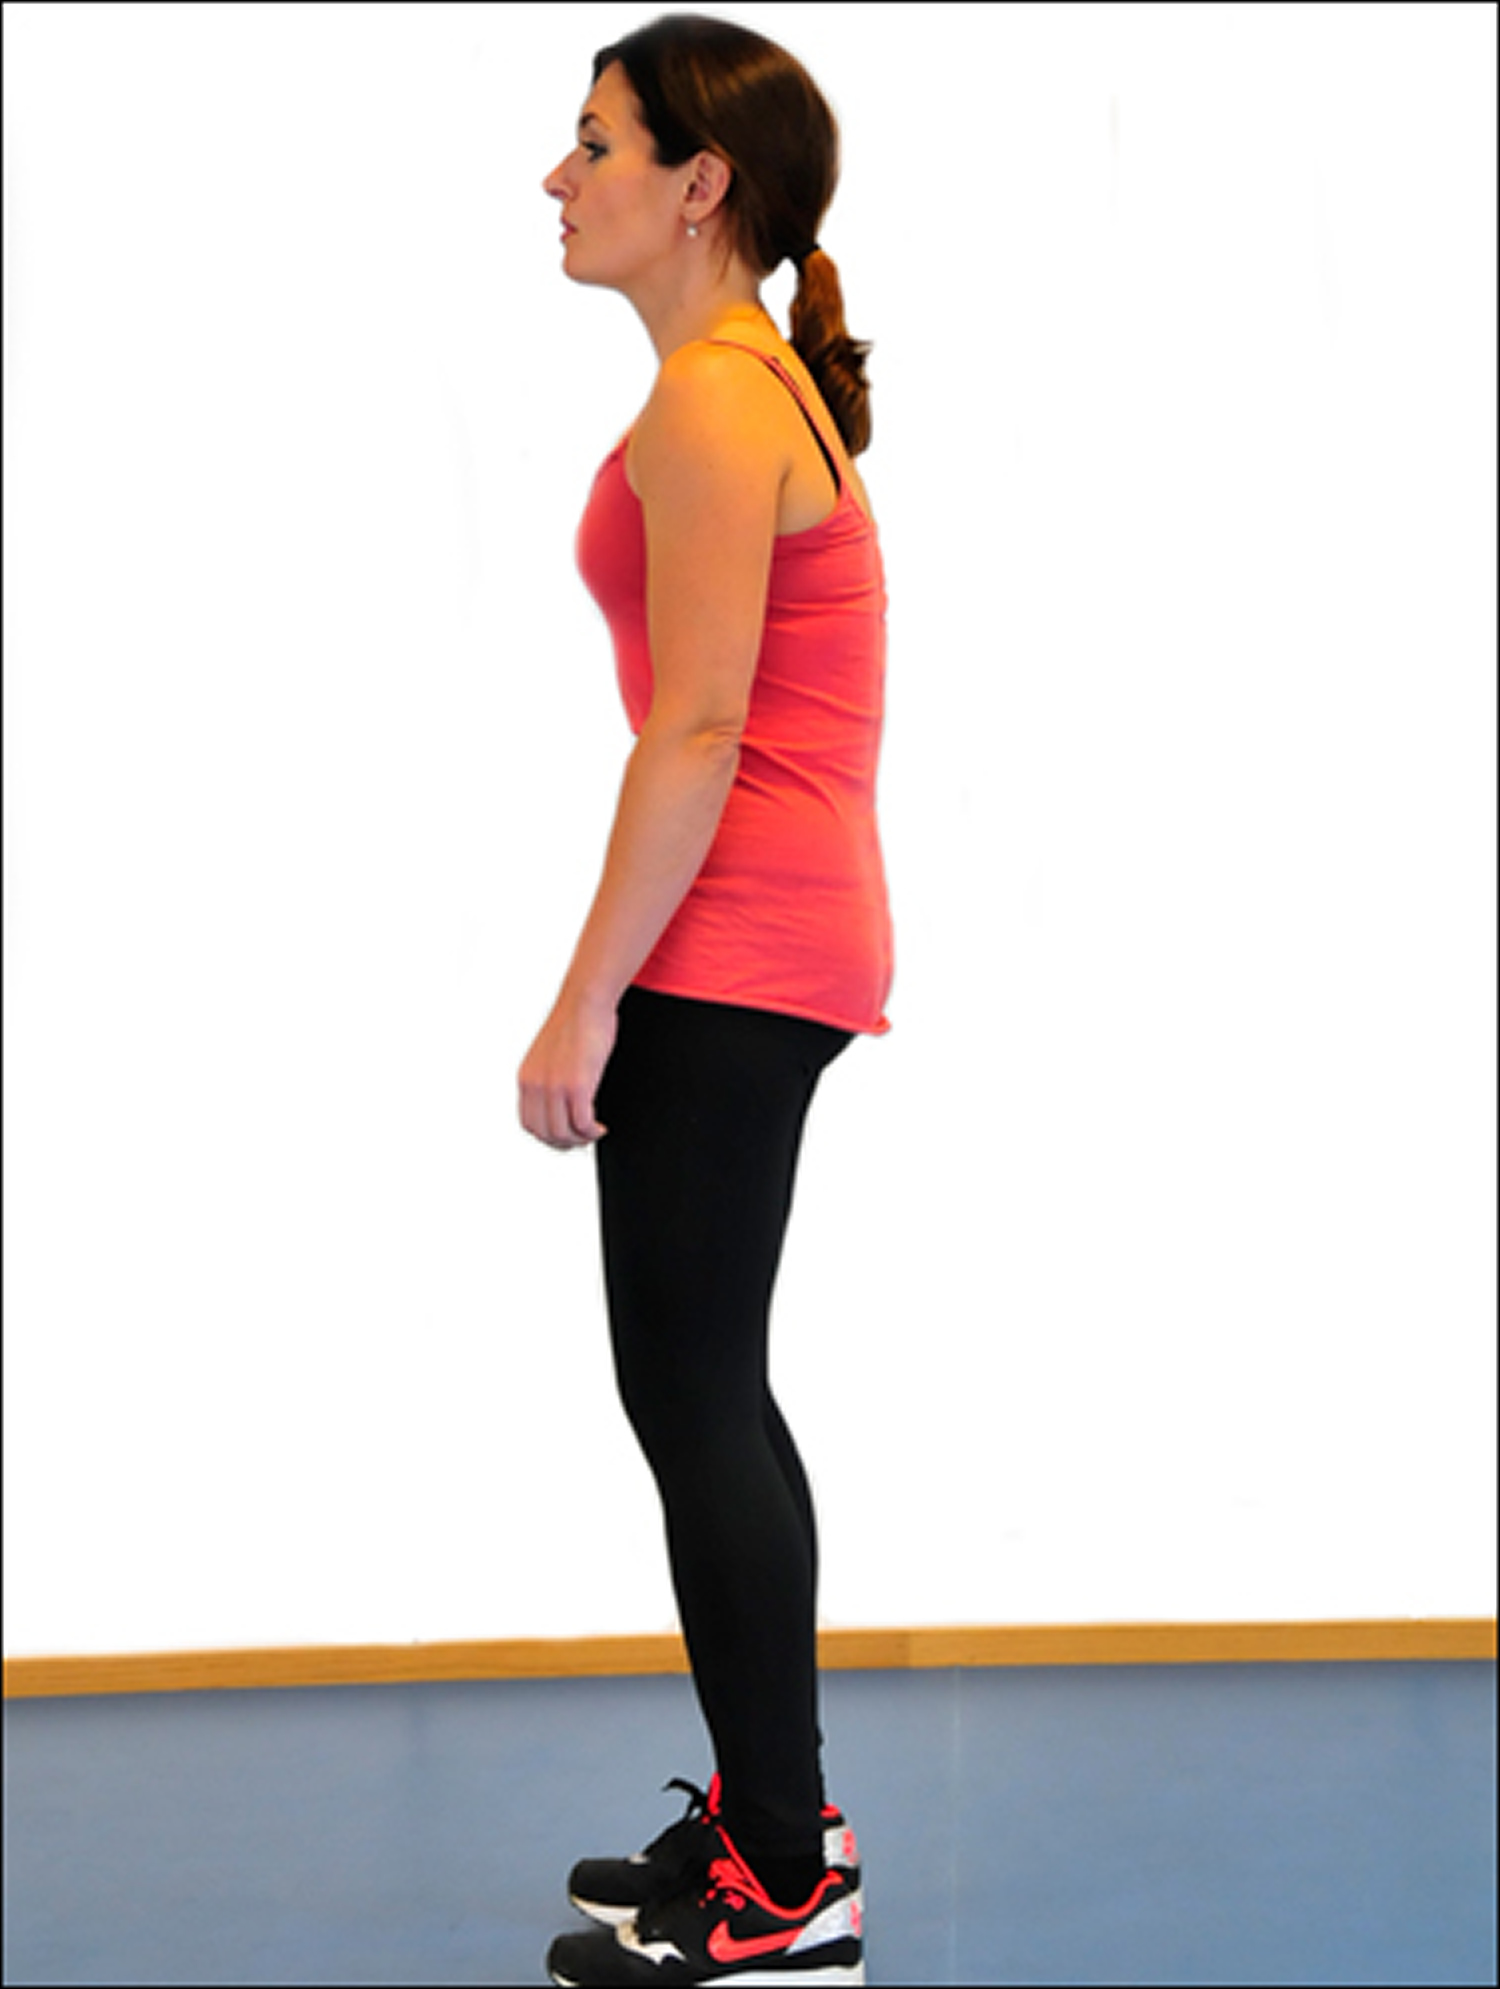 Standing with a flat back posture